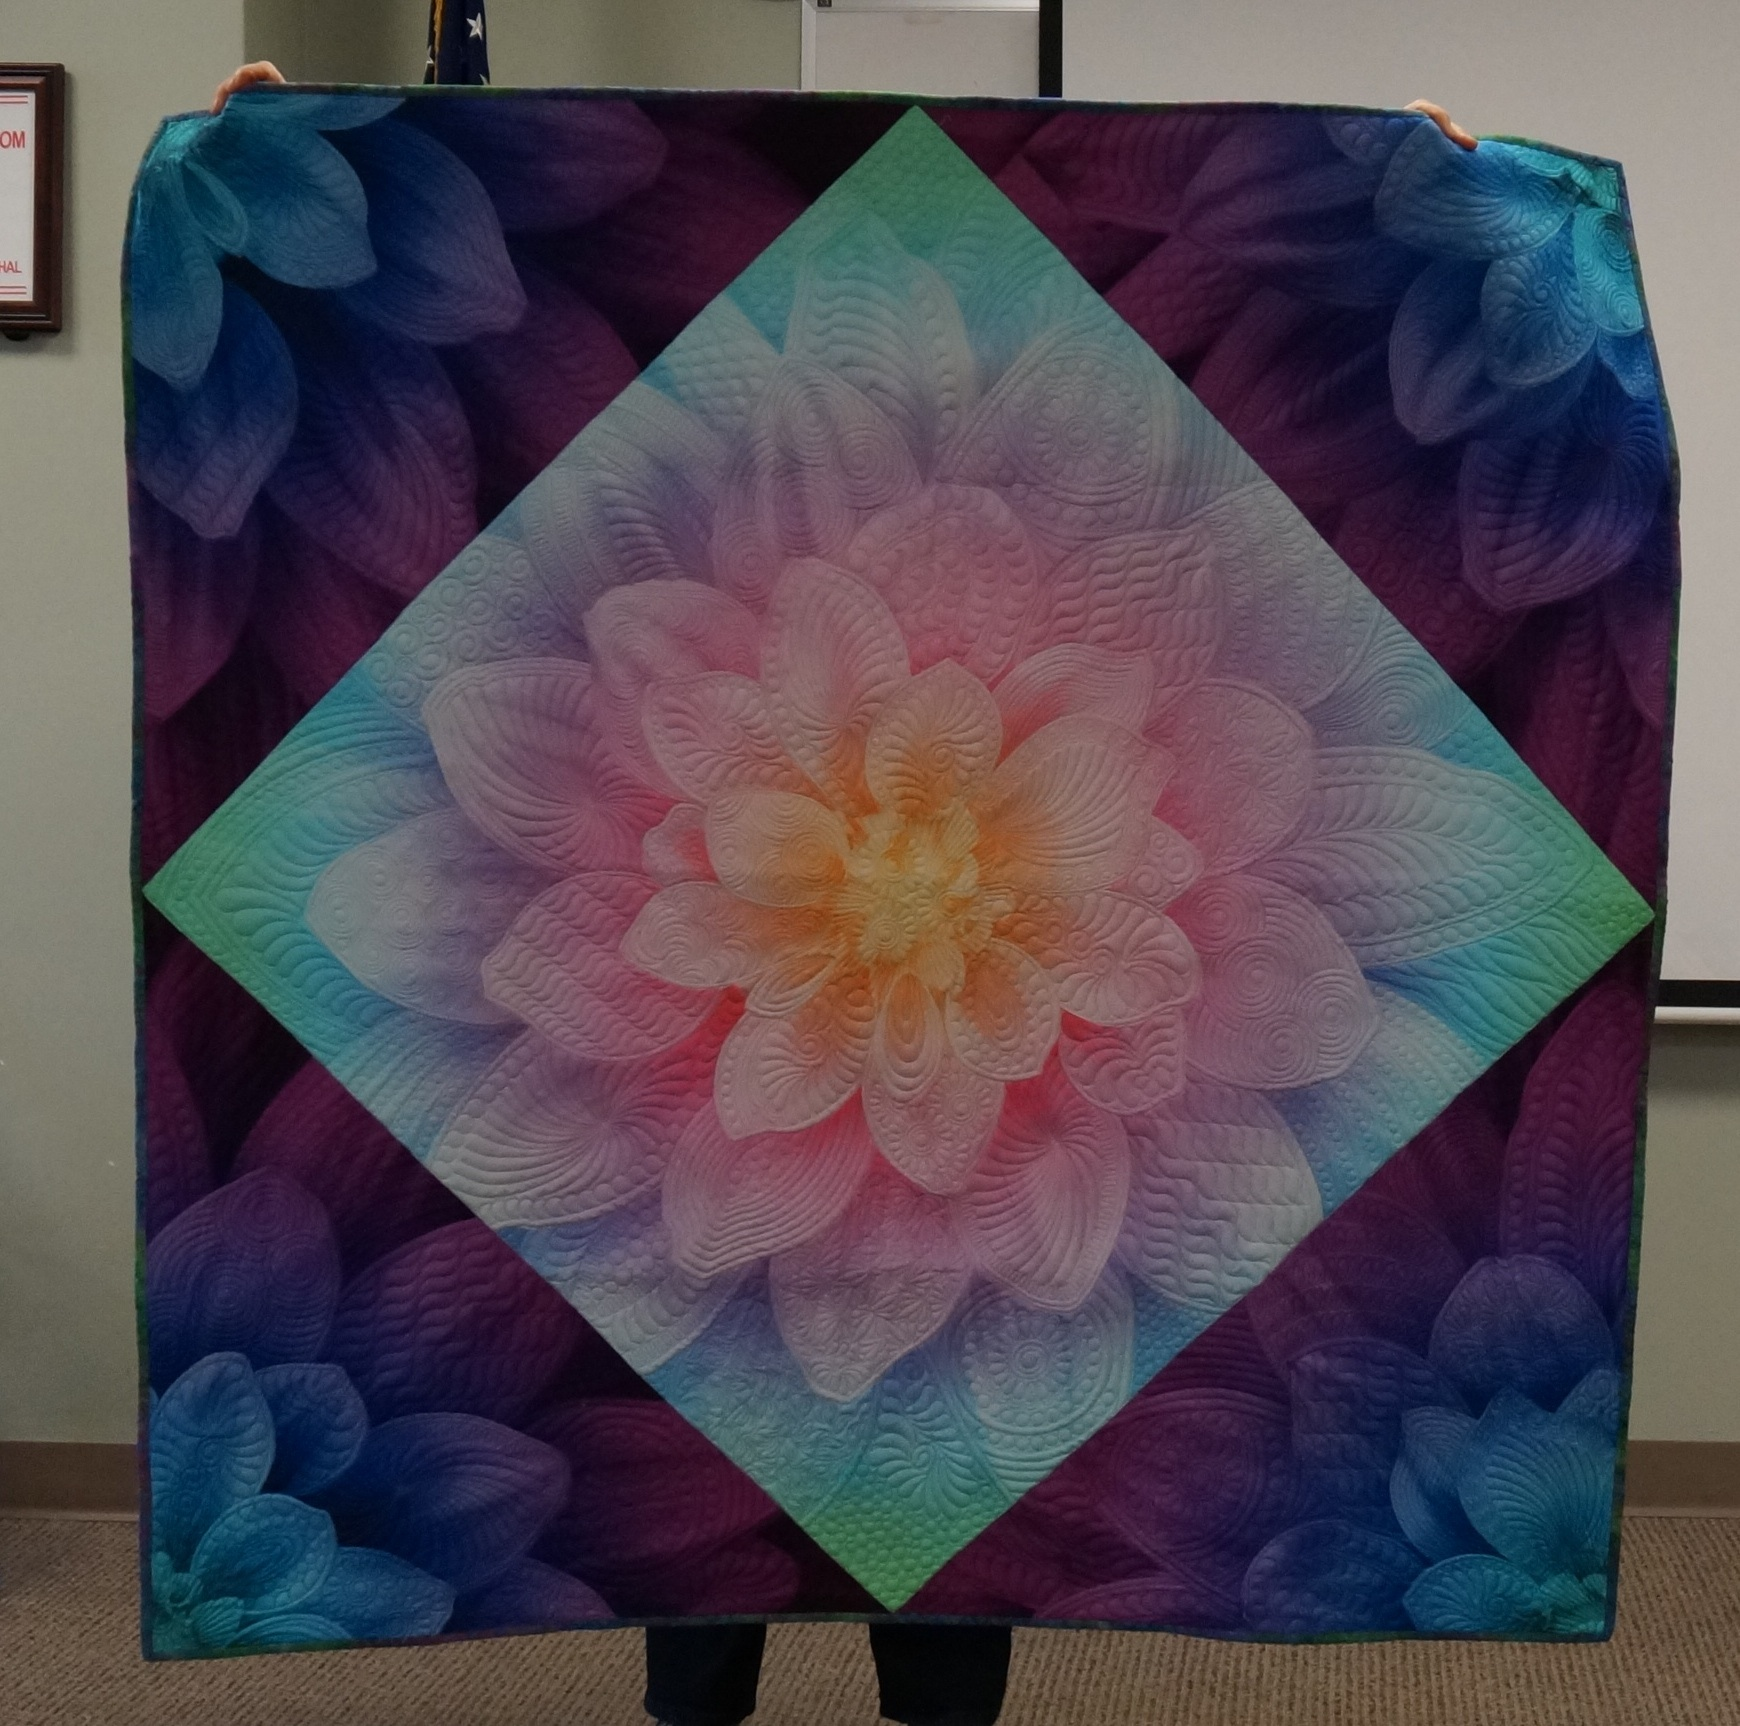 Sue used a panel to show off her stunning quilting.